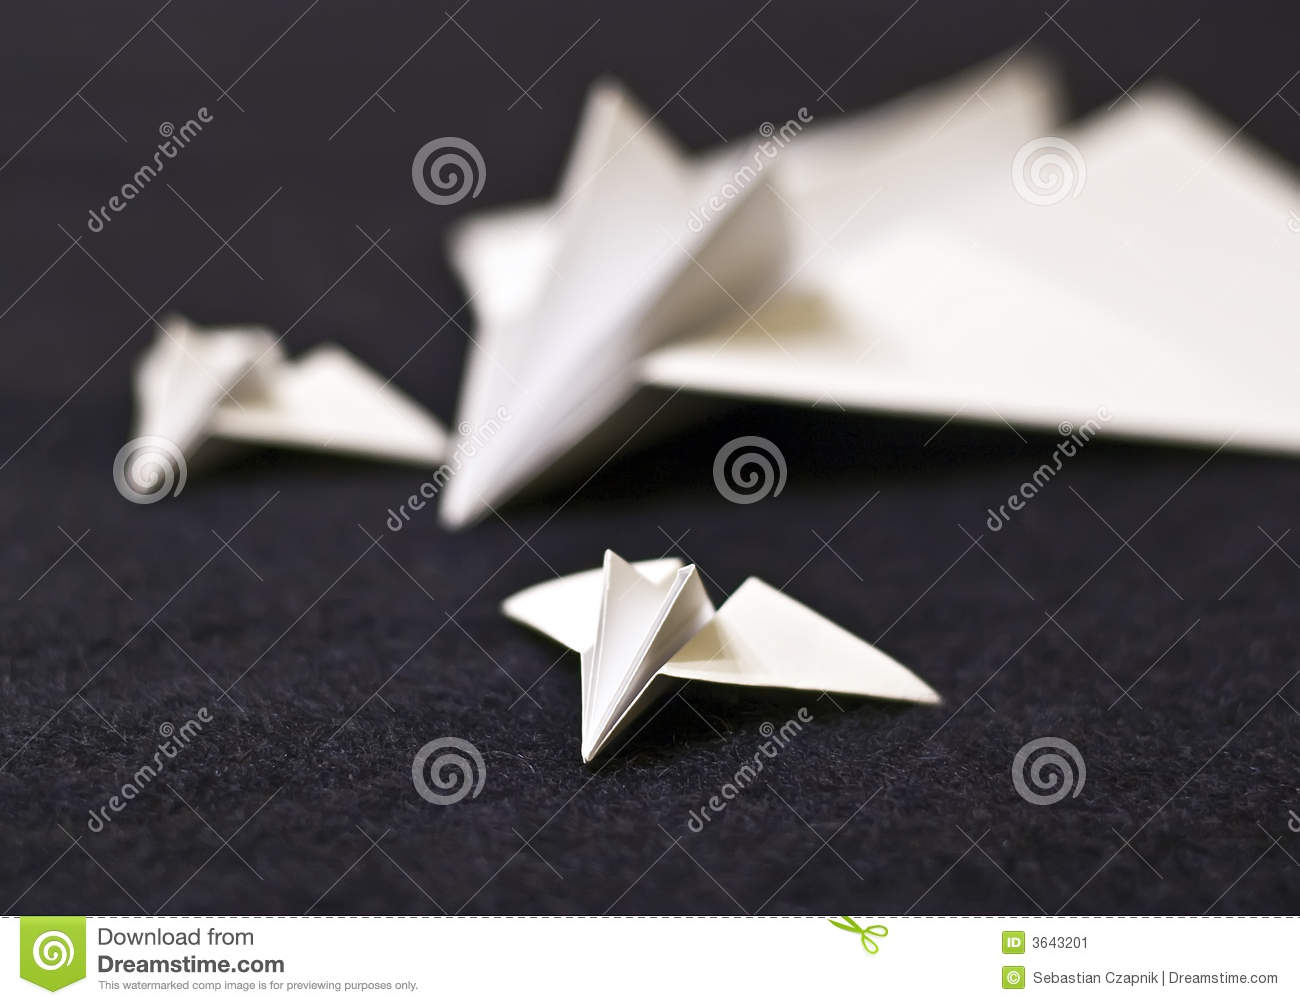 Paper planes family